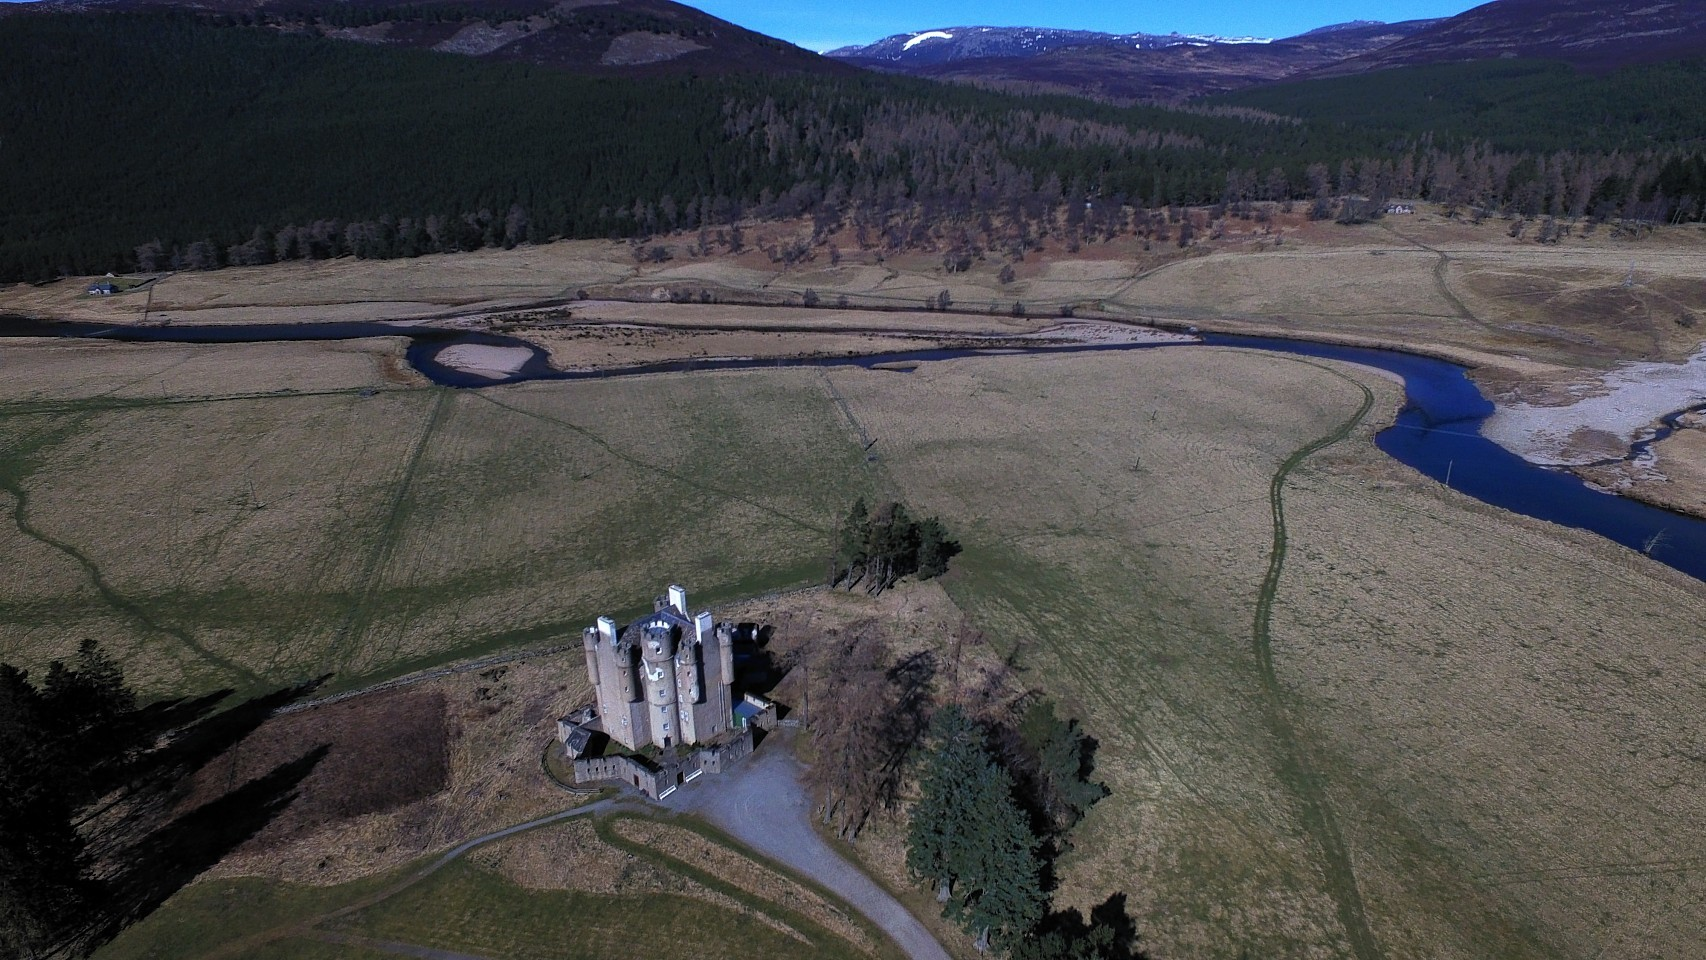 Braemar Castle from the skies. Pics and video by Kenny Elrick